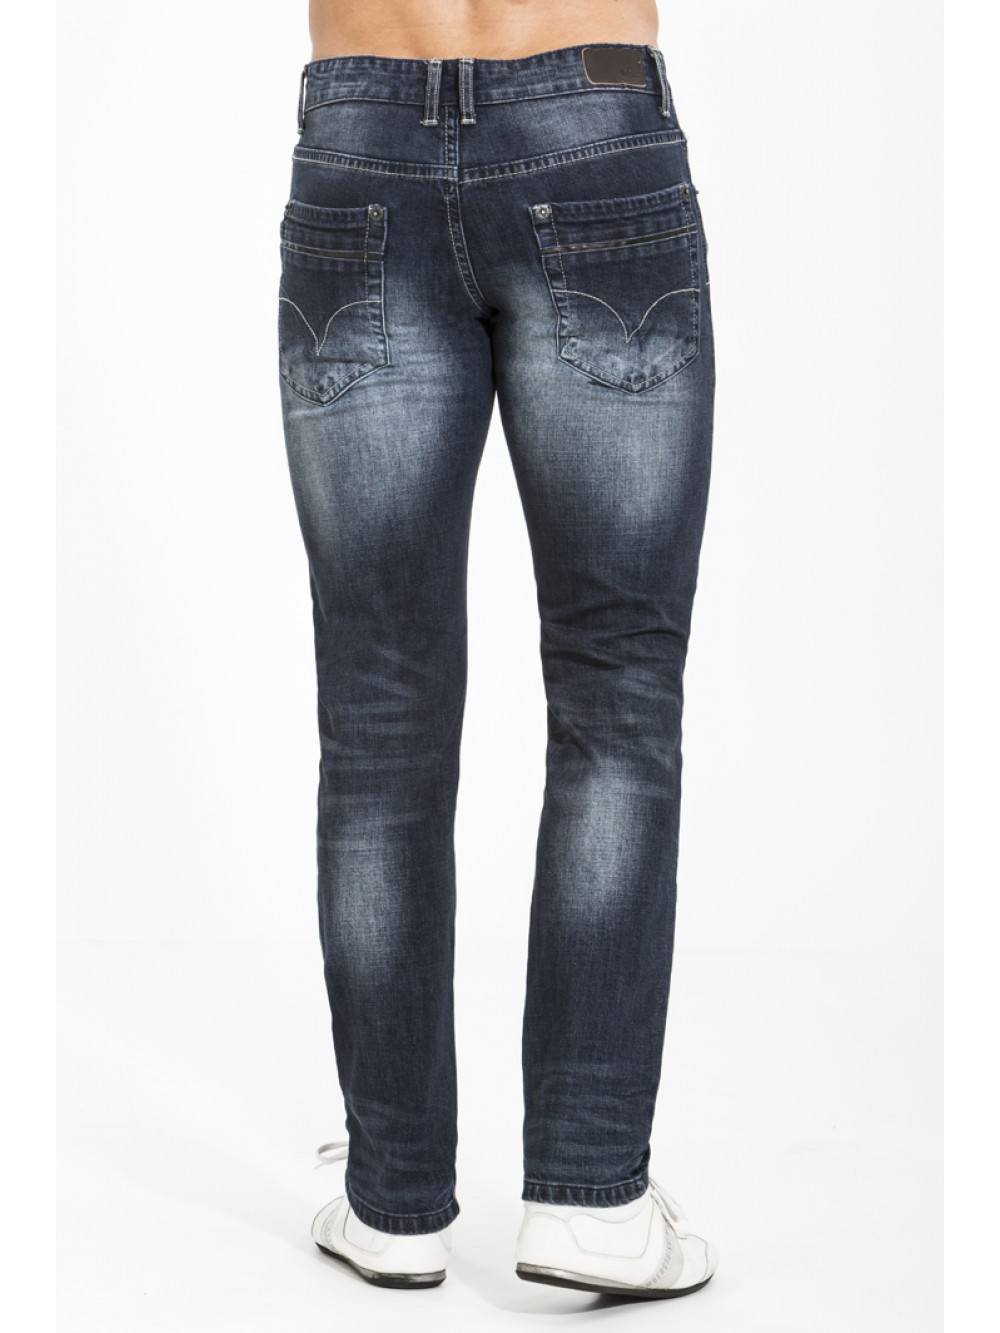 Stretch Denim Jeans JSM253 super slim G489 dark blue